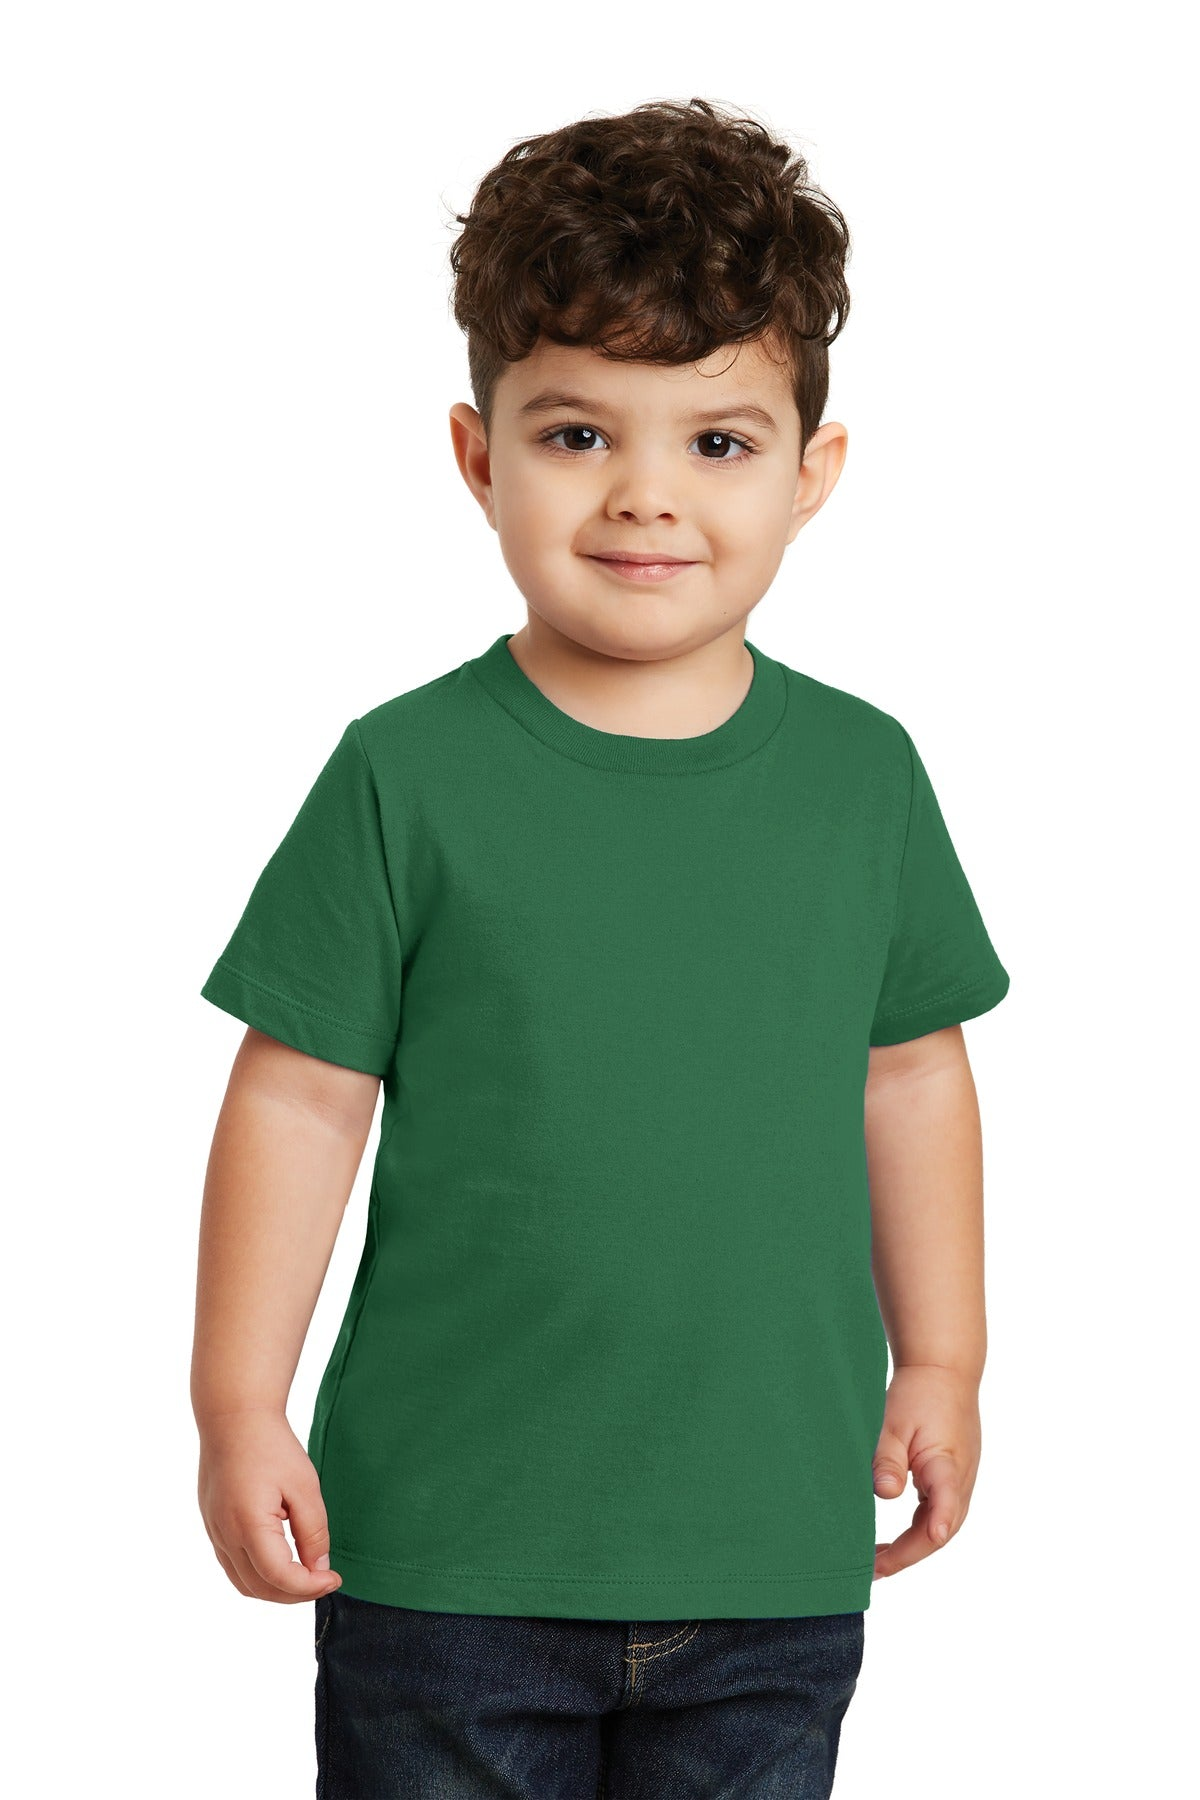 Athletic Kelly Port & Company Toddler Fan Favorite T-Shirt